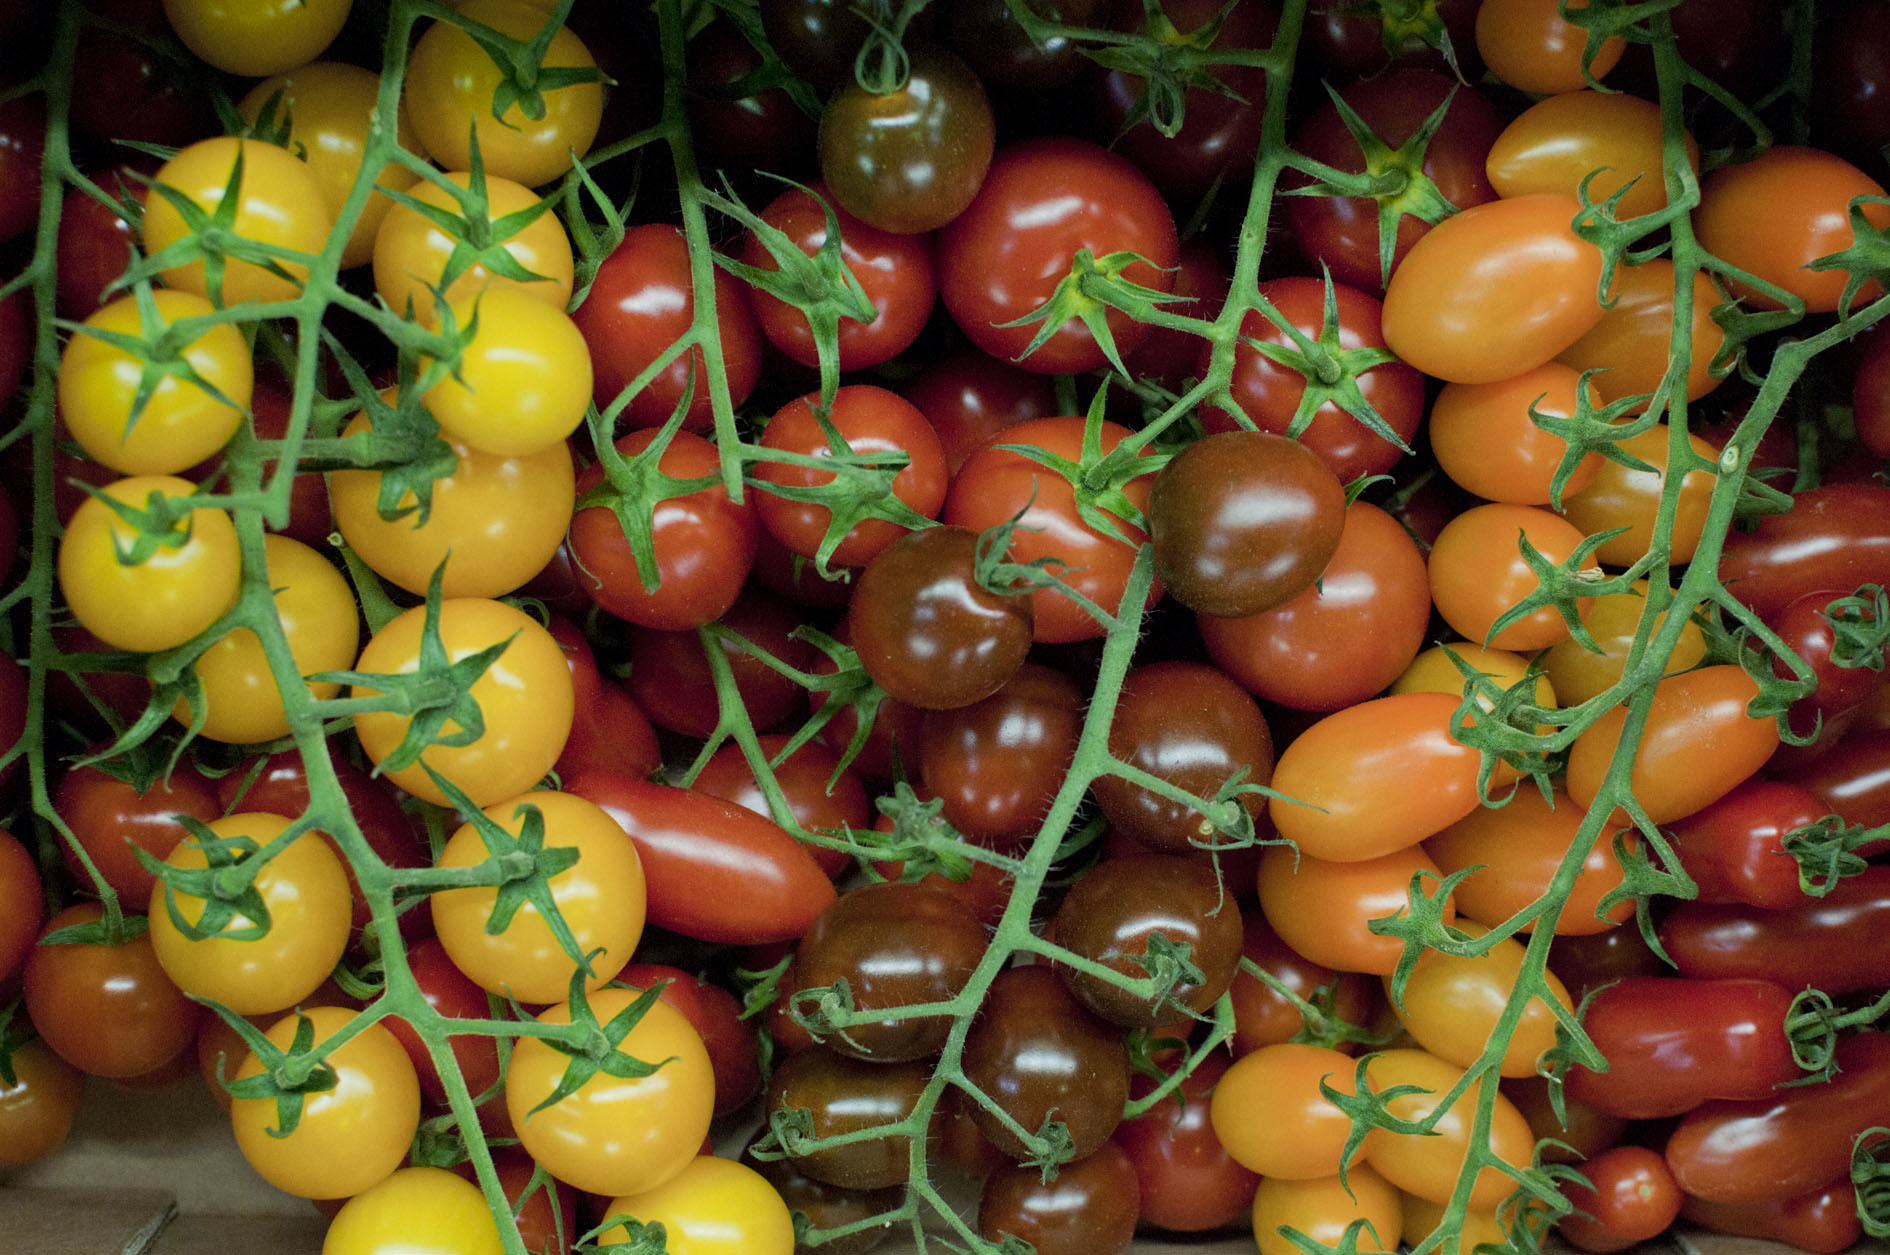 tomatoes_170922_121325.jpg?mtime=20170922121325#asset:11439